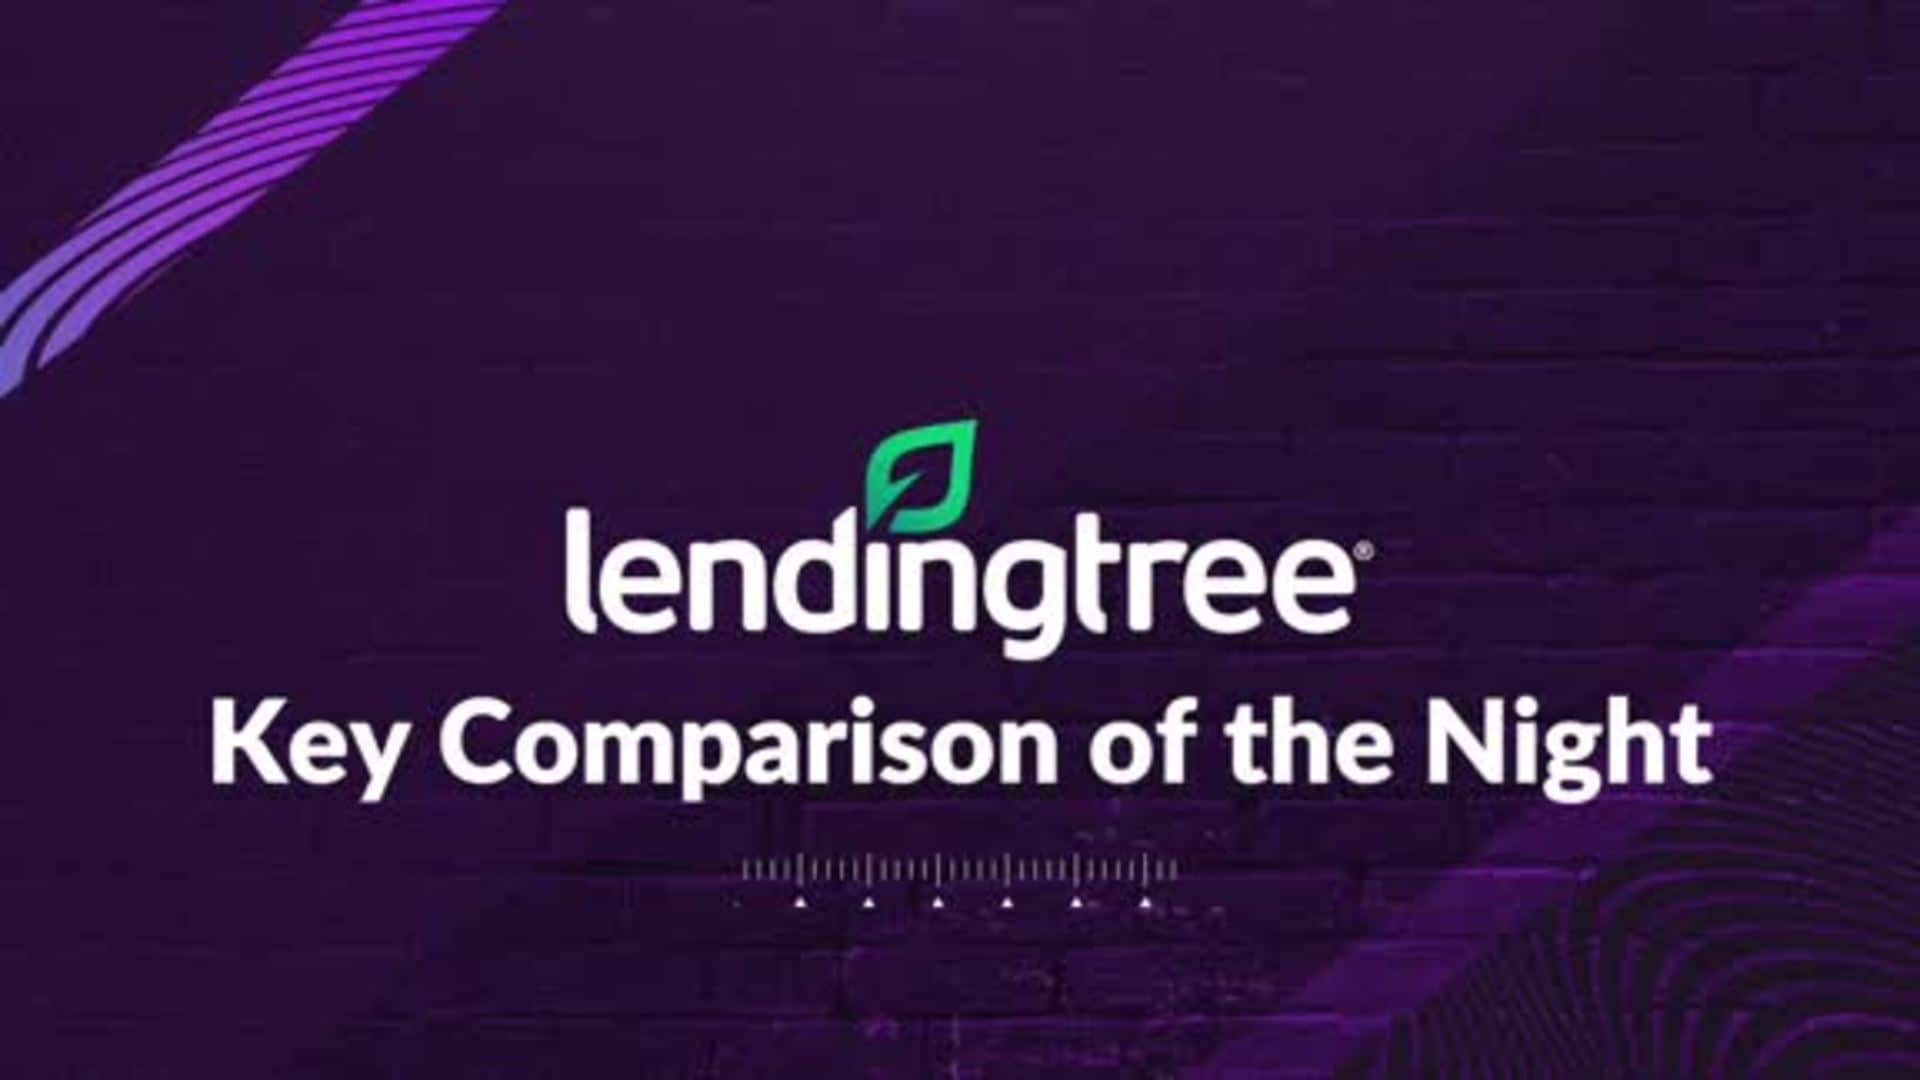 LendingTree's Key Comparison of the Night - 2/26/20